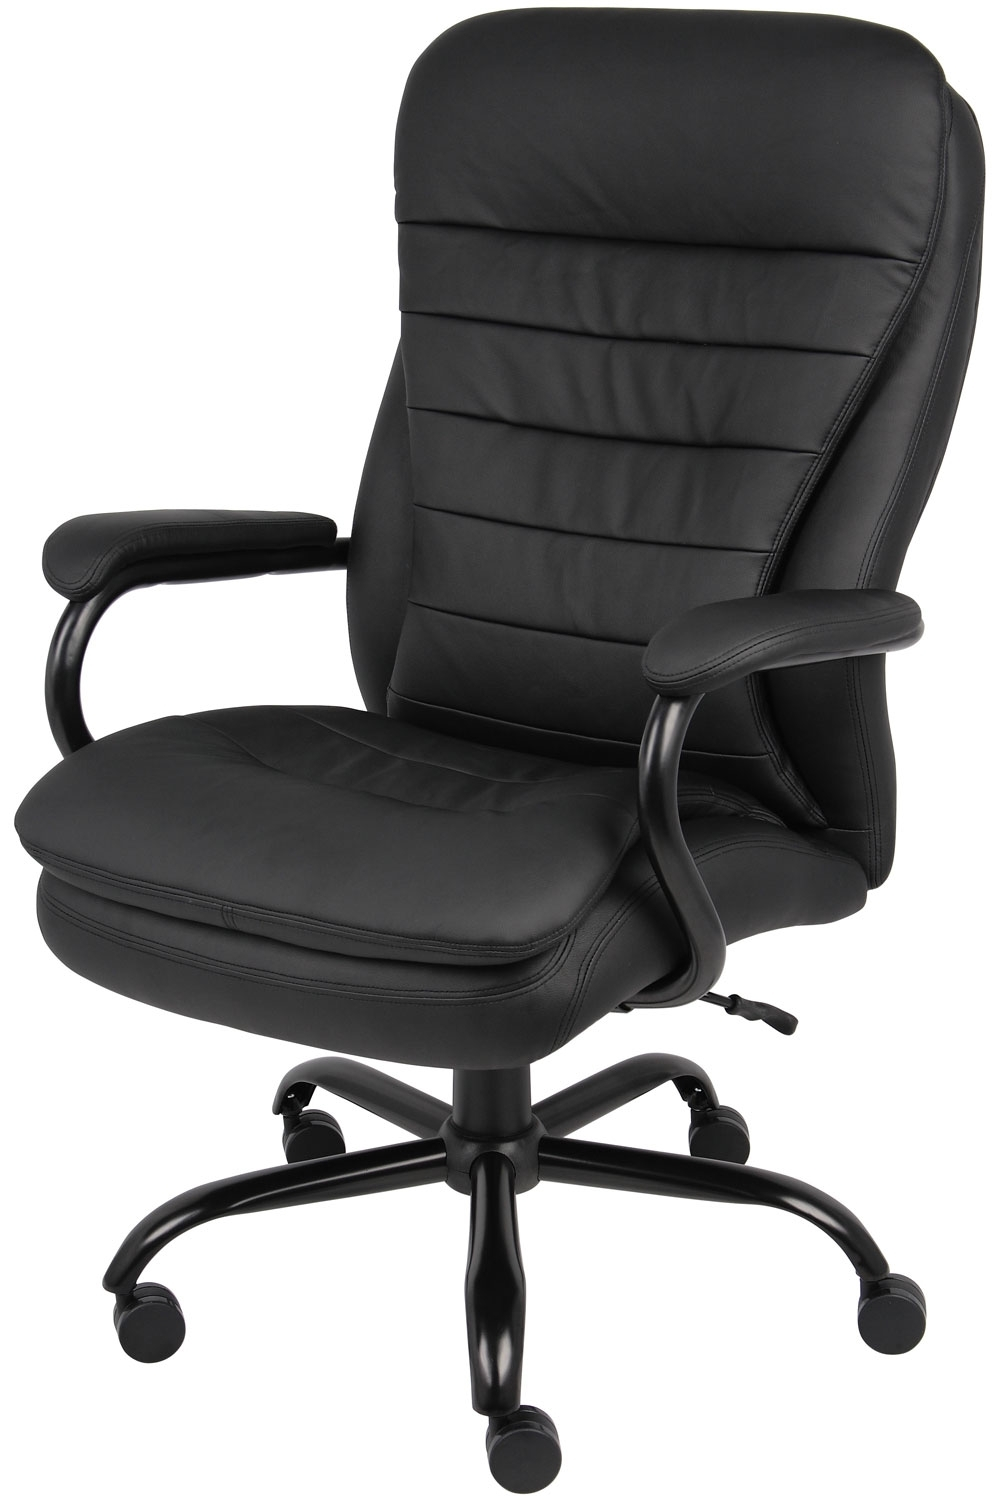 Most Popular B991 Cp Big And Tall Executive Office Chair In Caresoft Vinyl Inside Black Executive Office Chairs (View 16 of 20)